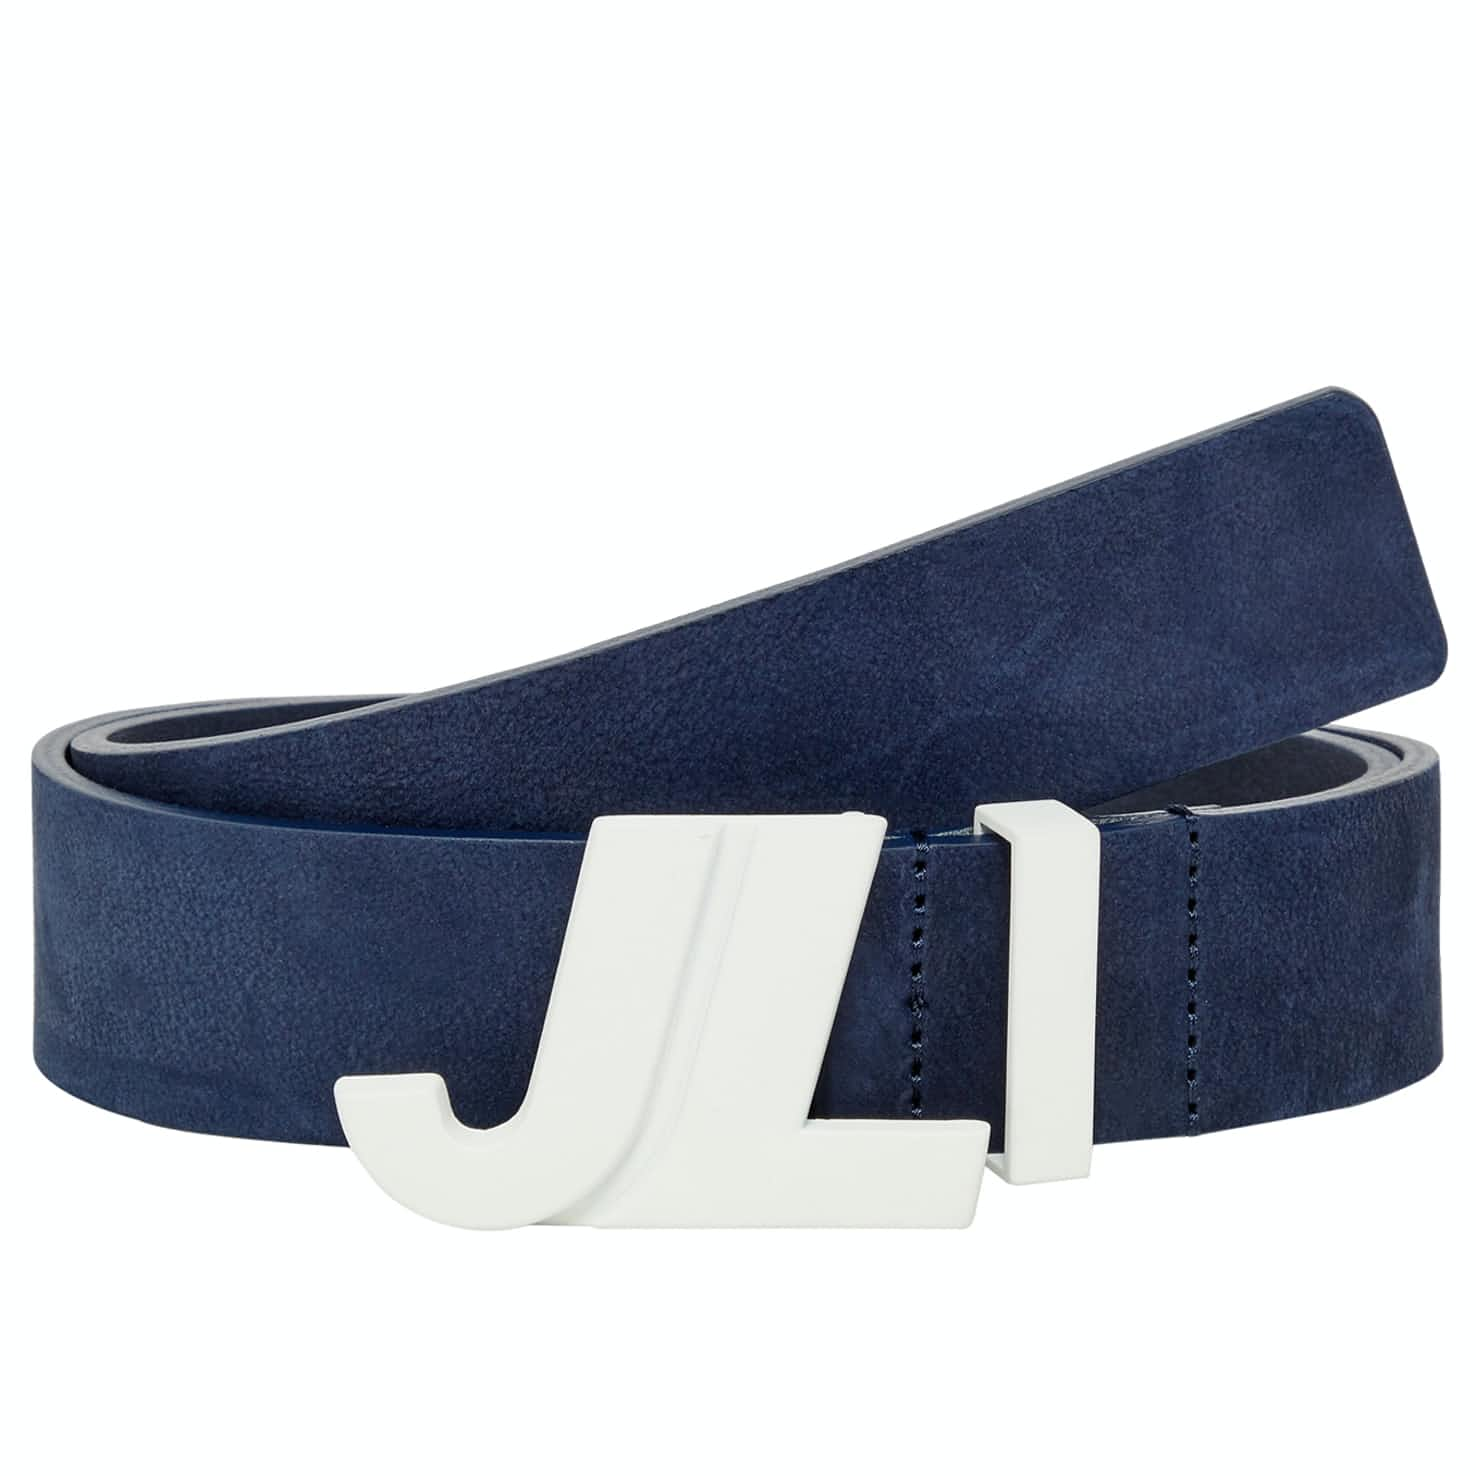 Iconic Brushed Leather JL Navy - SS19